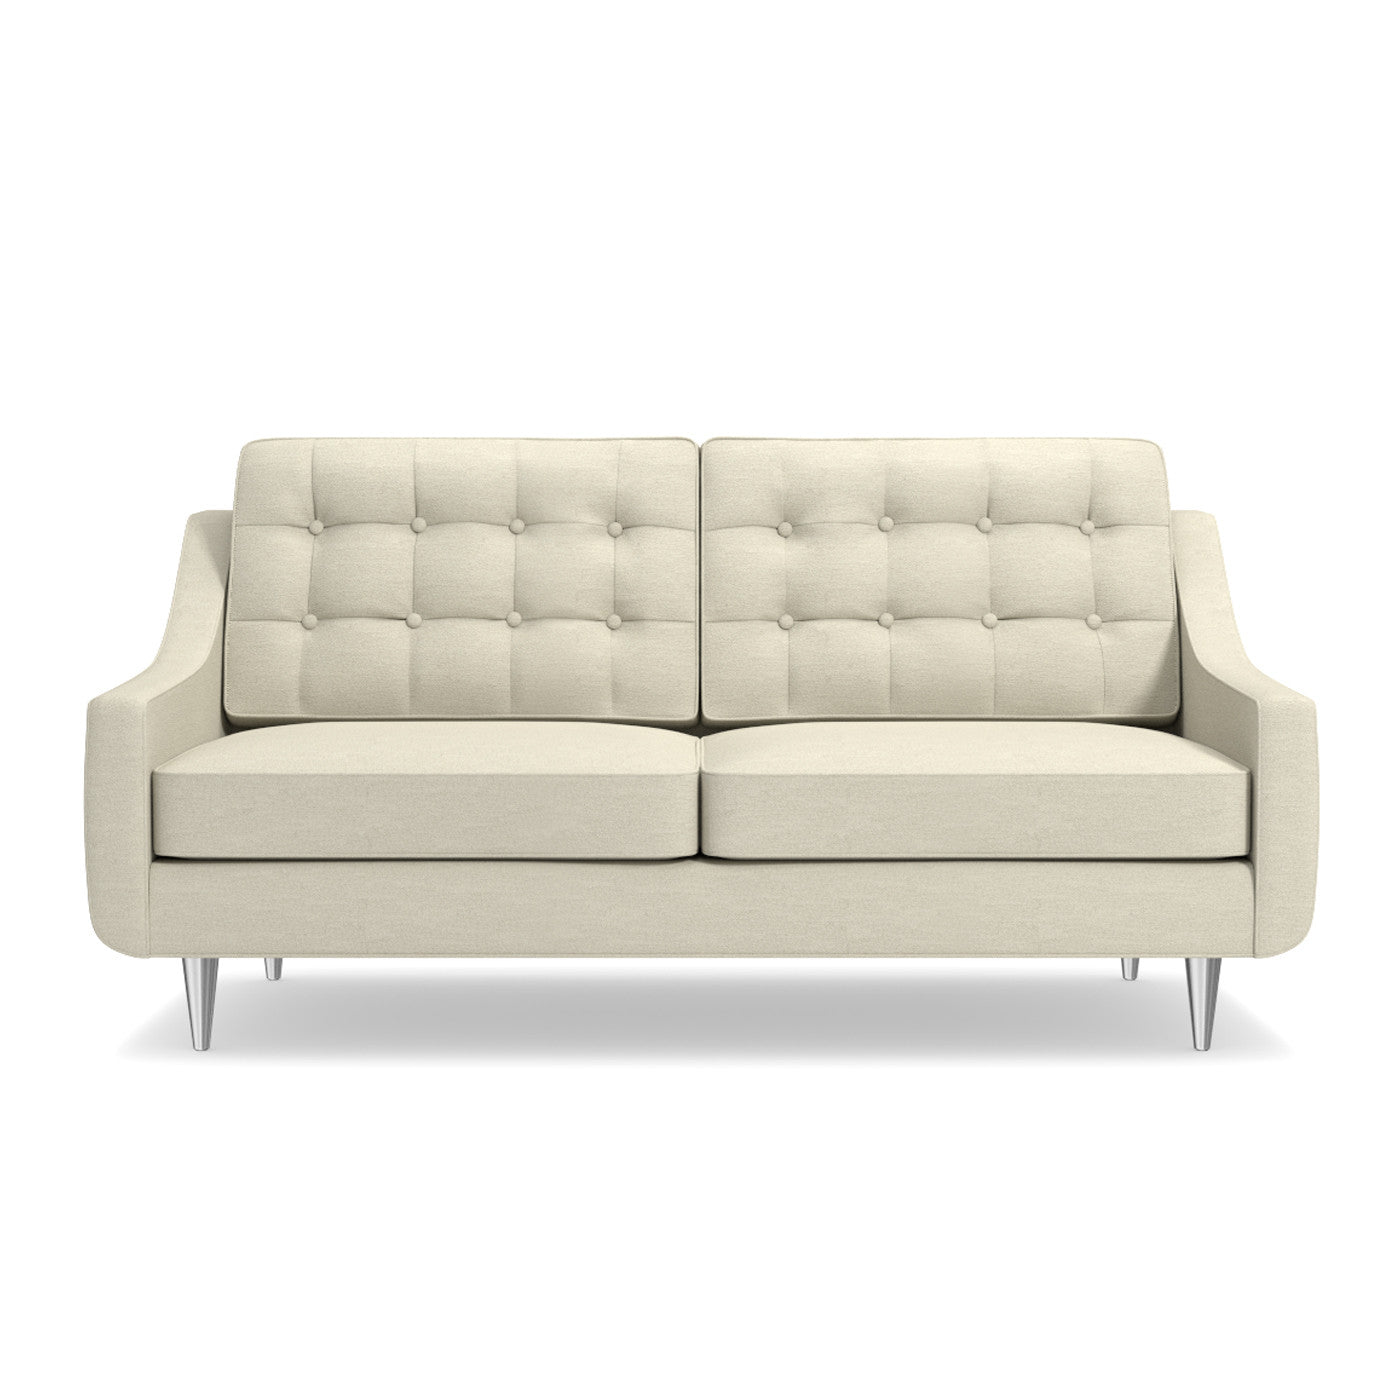 Cloverdale Drive Apartment Size Sofa CHOICE OF FABRICS - Apt2B - 1 - Apartment-Size Sofas & Sectionals - Apt2B.com